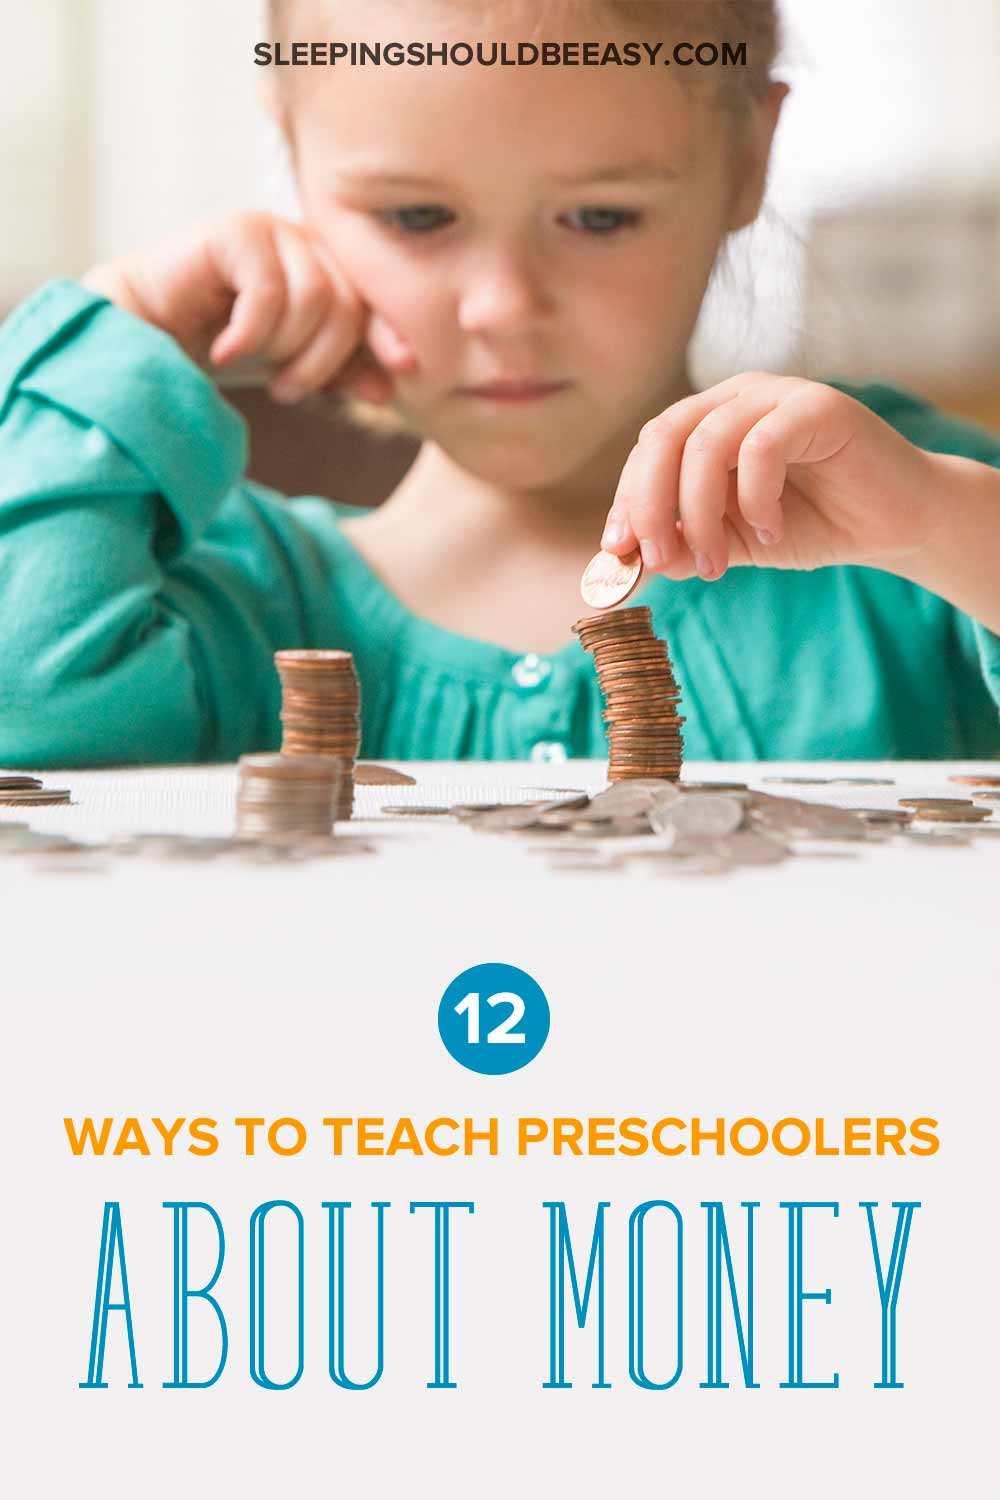 teaching preschoolers about money